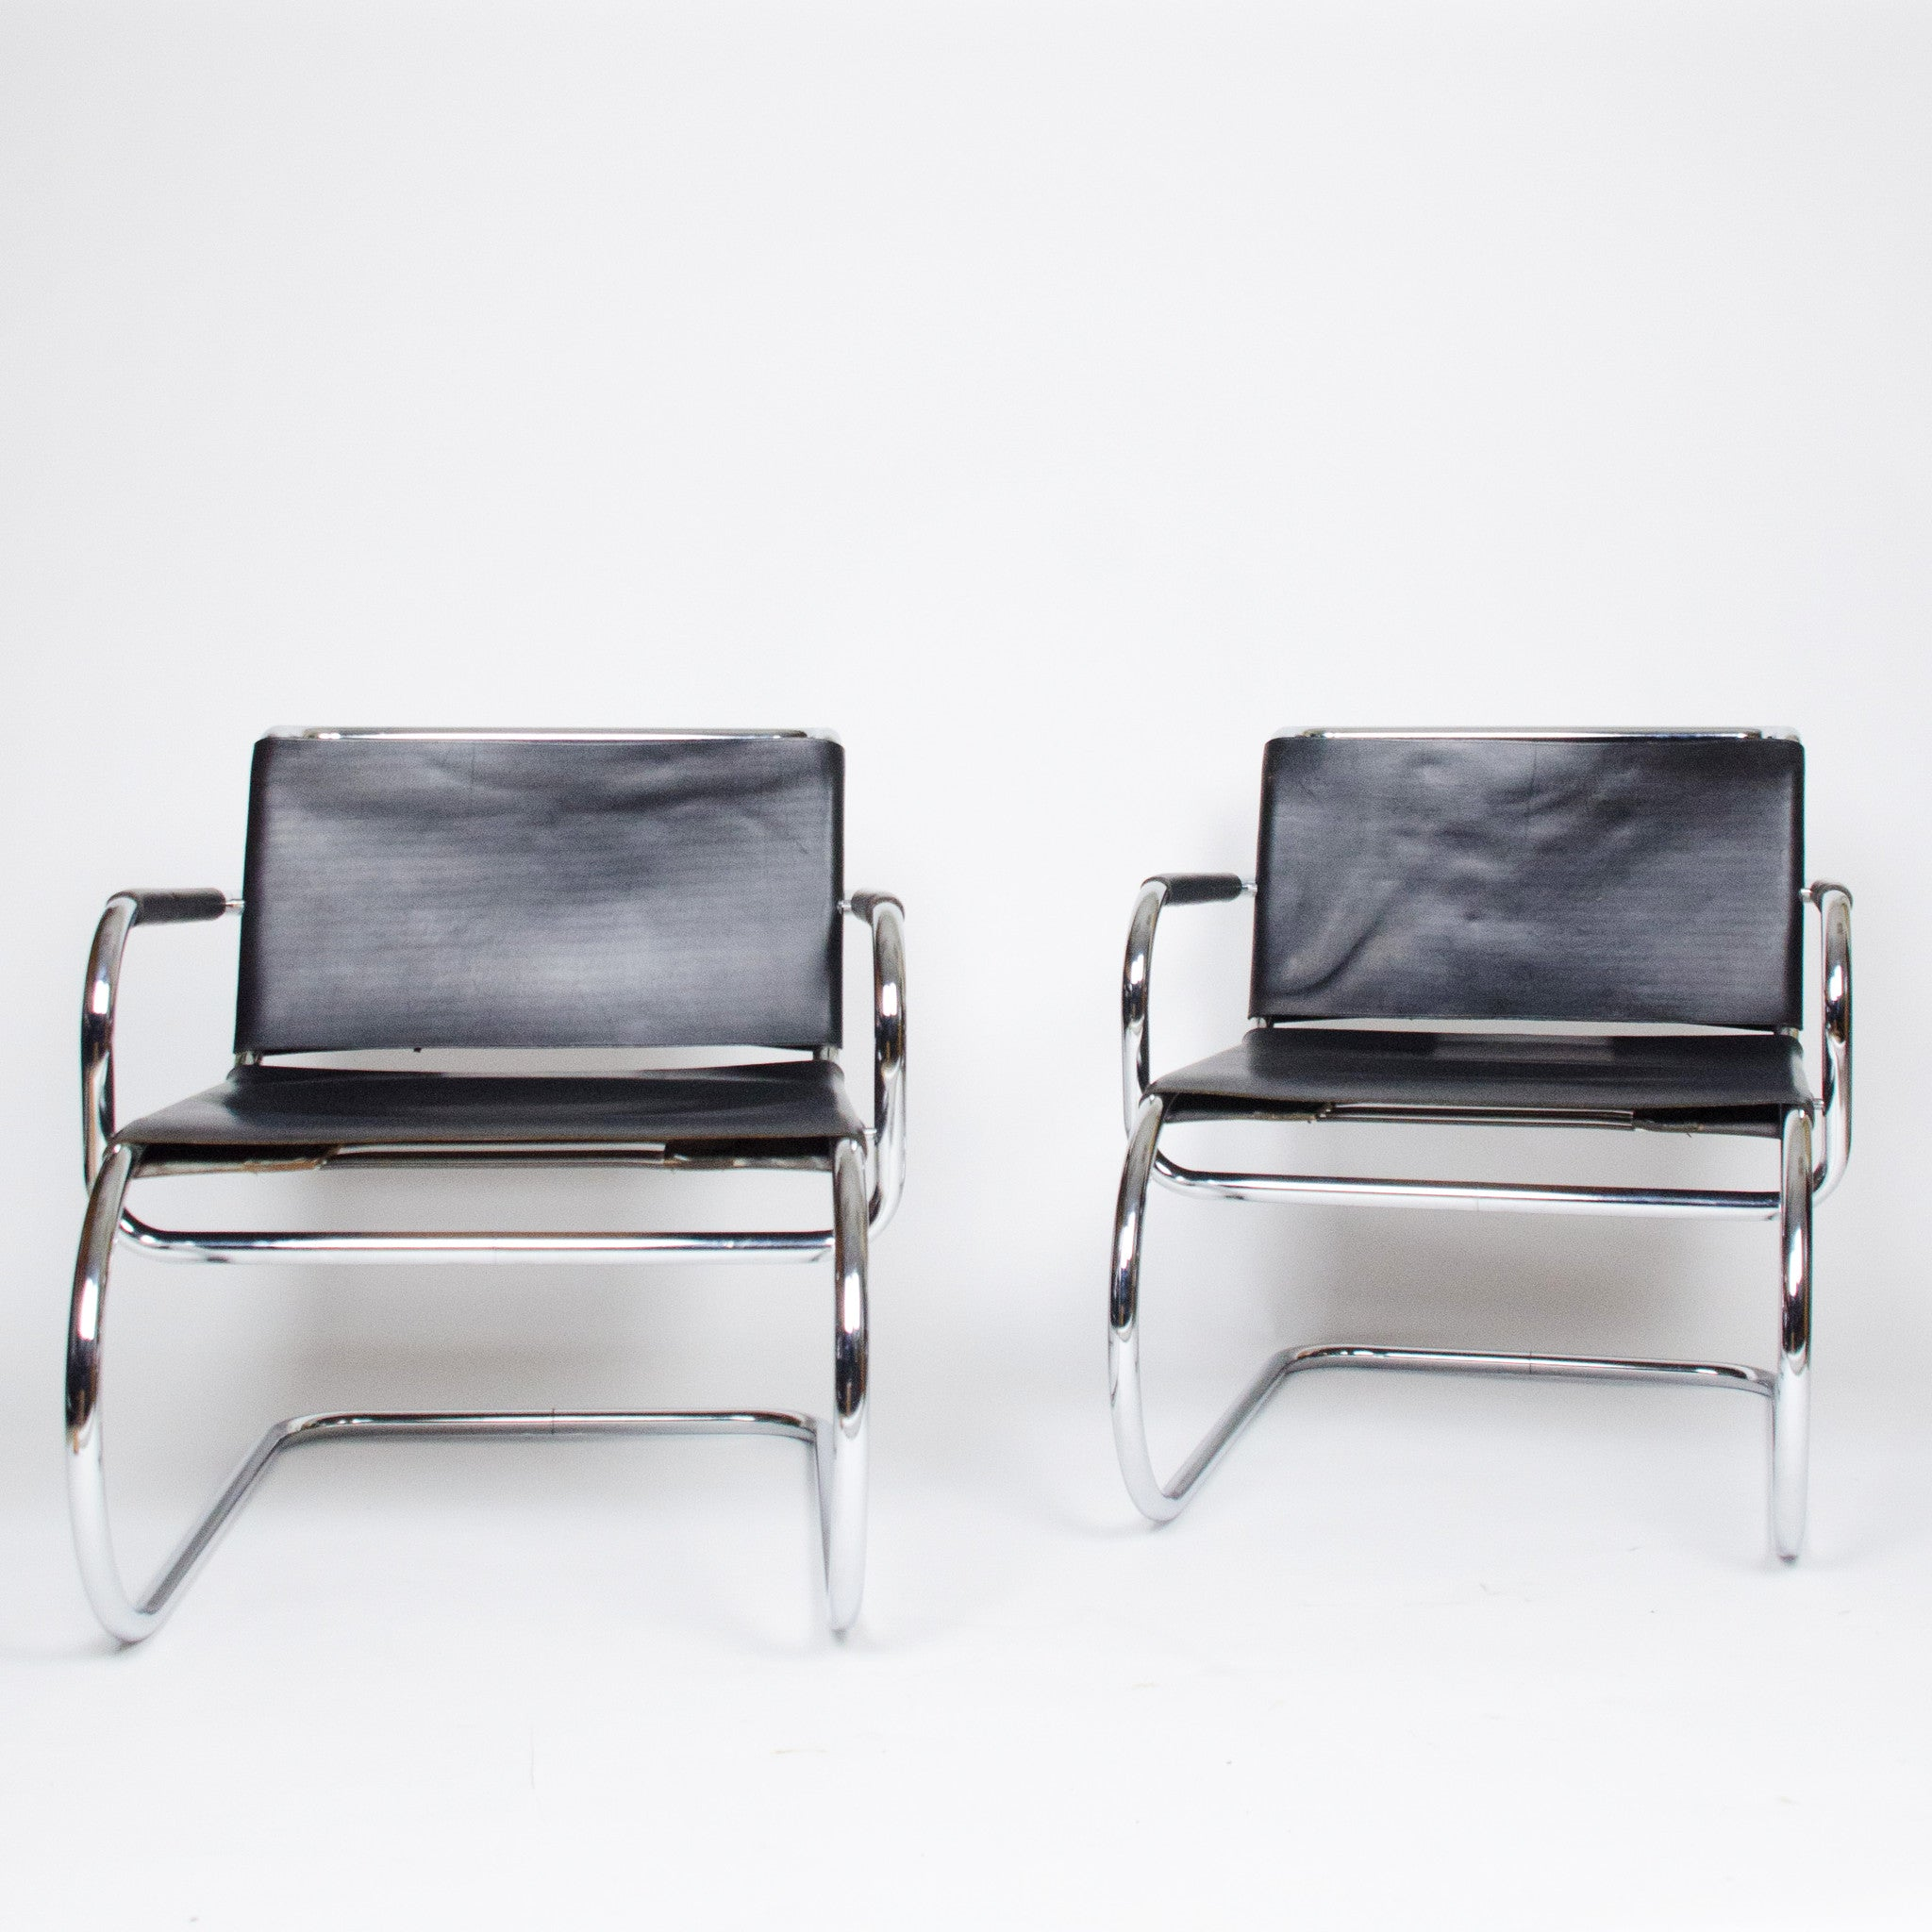 Franco Albini Tecta Cassina Rare 1933 Lounge Chairs – D ROSE MOD